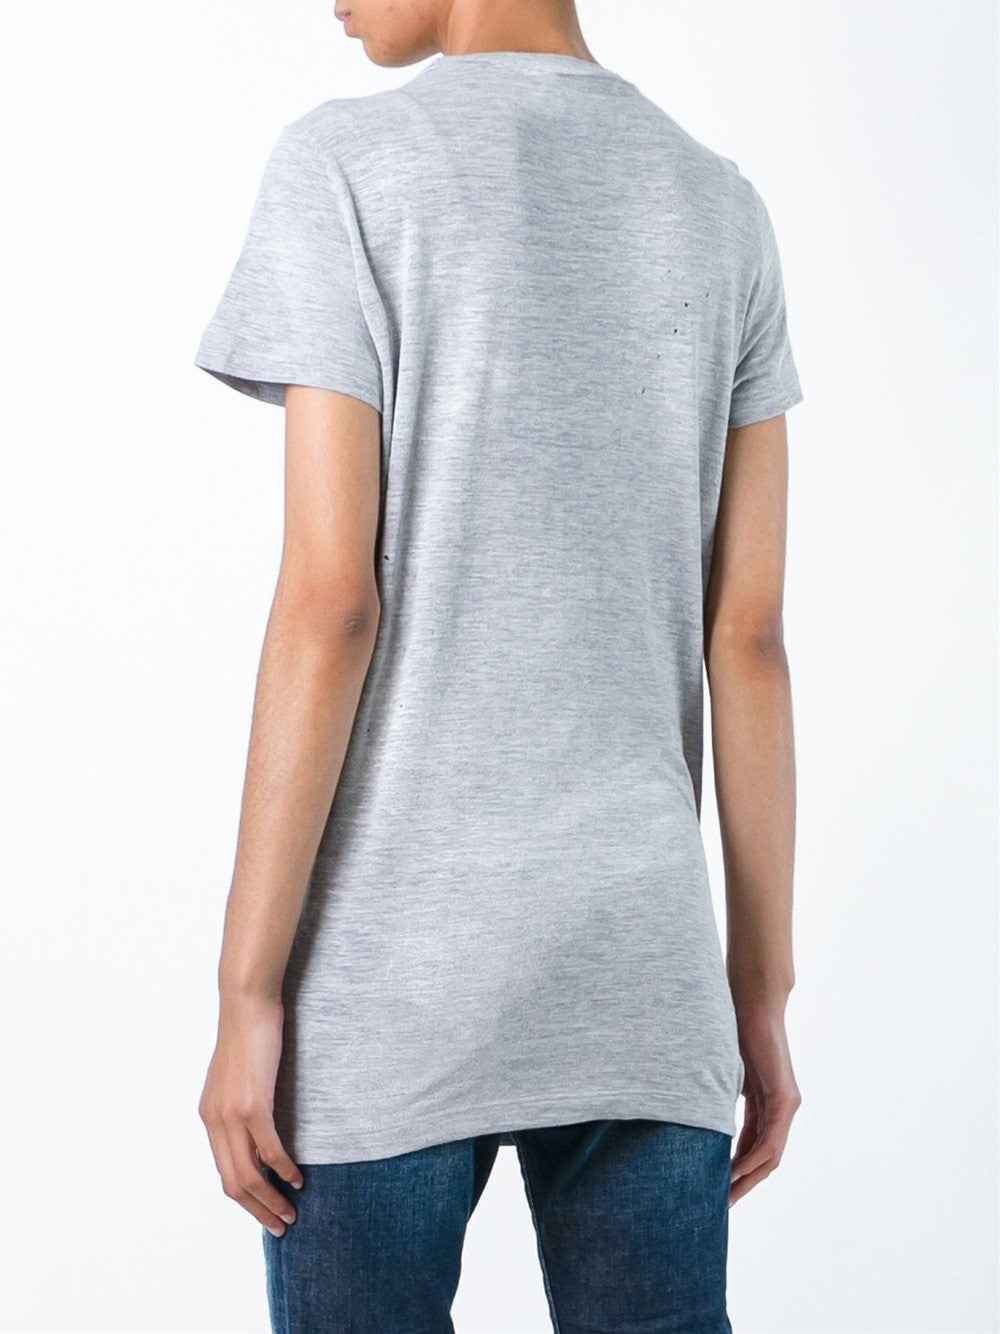 Graphic Tee | S72GC0942-S22146